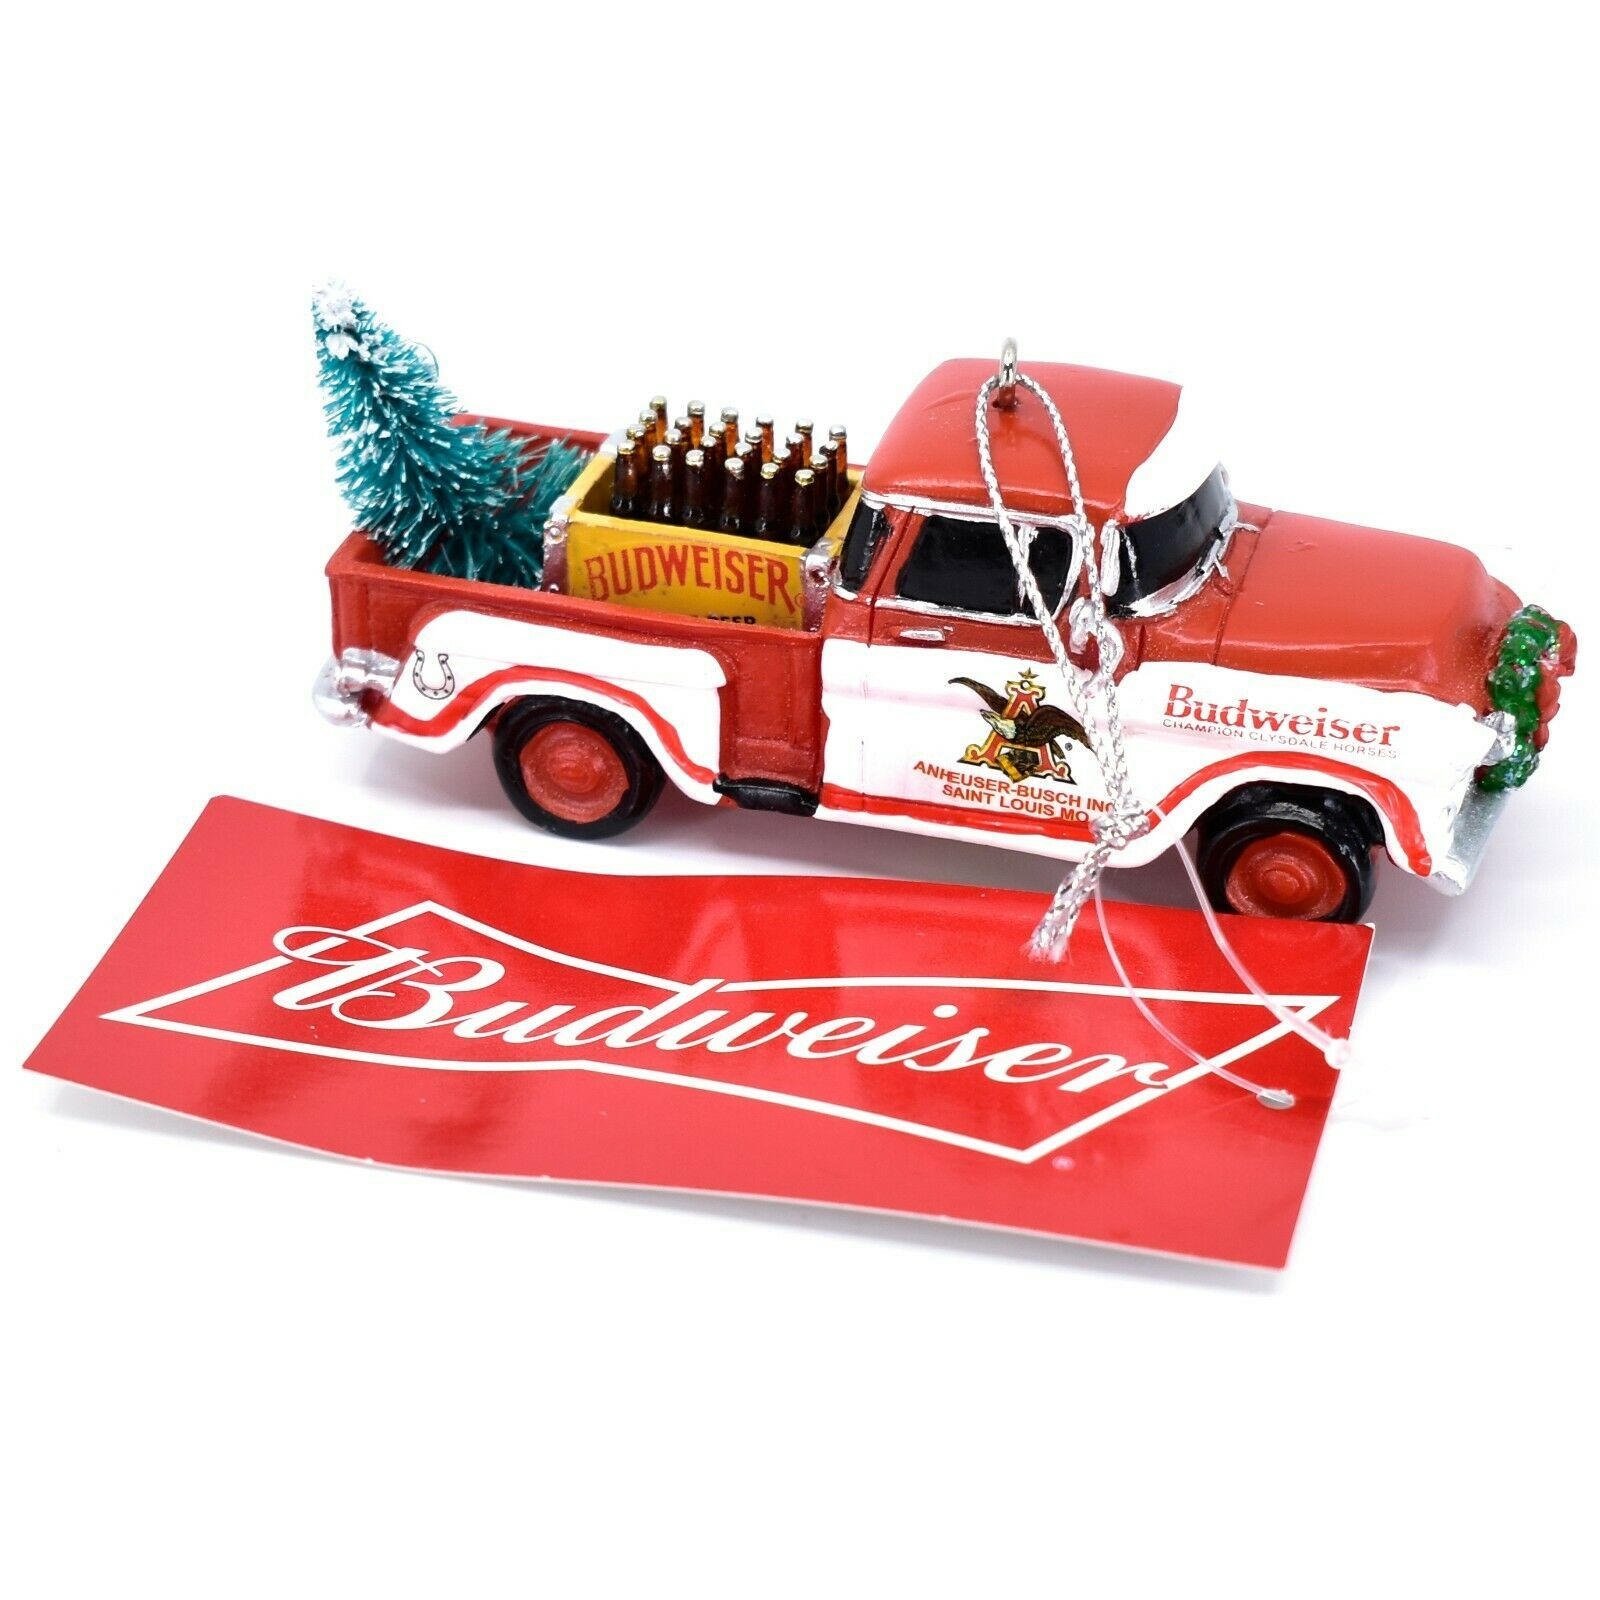 Kurt S Adler Budweiser Delivery Pickup Truck with Tree Christmas Ornament AB2201